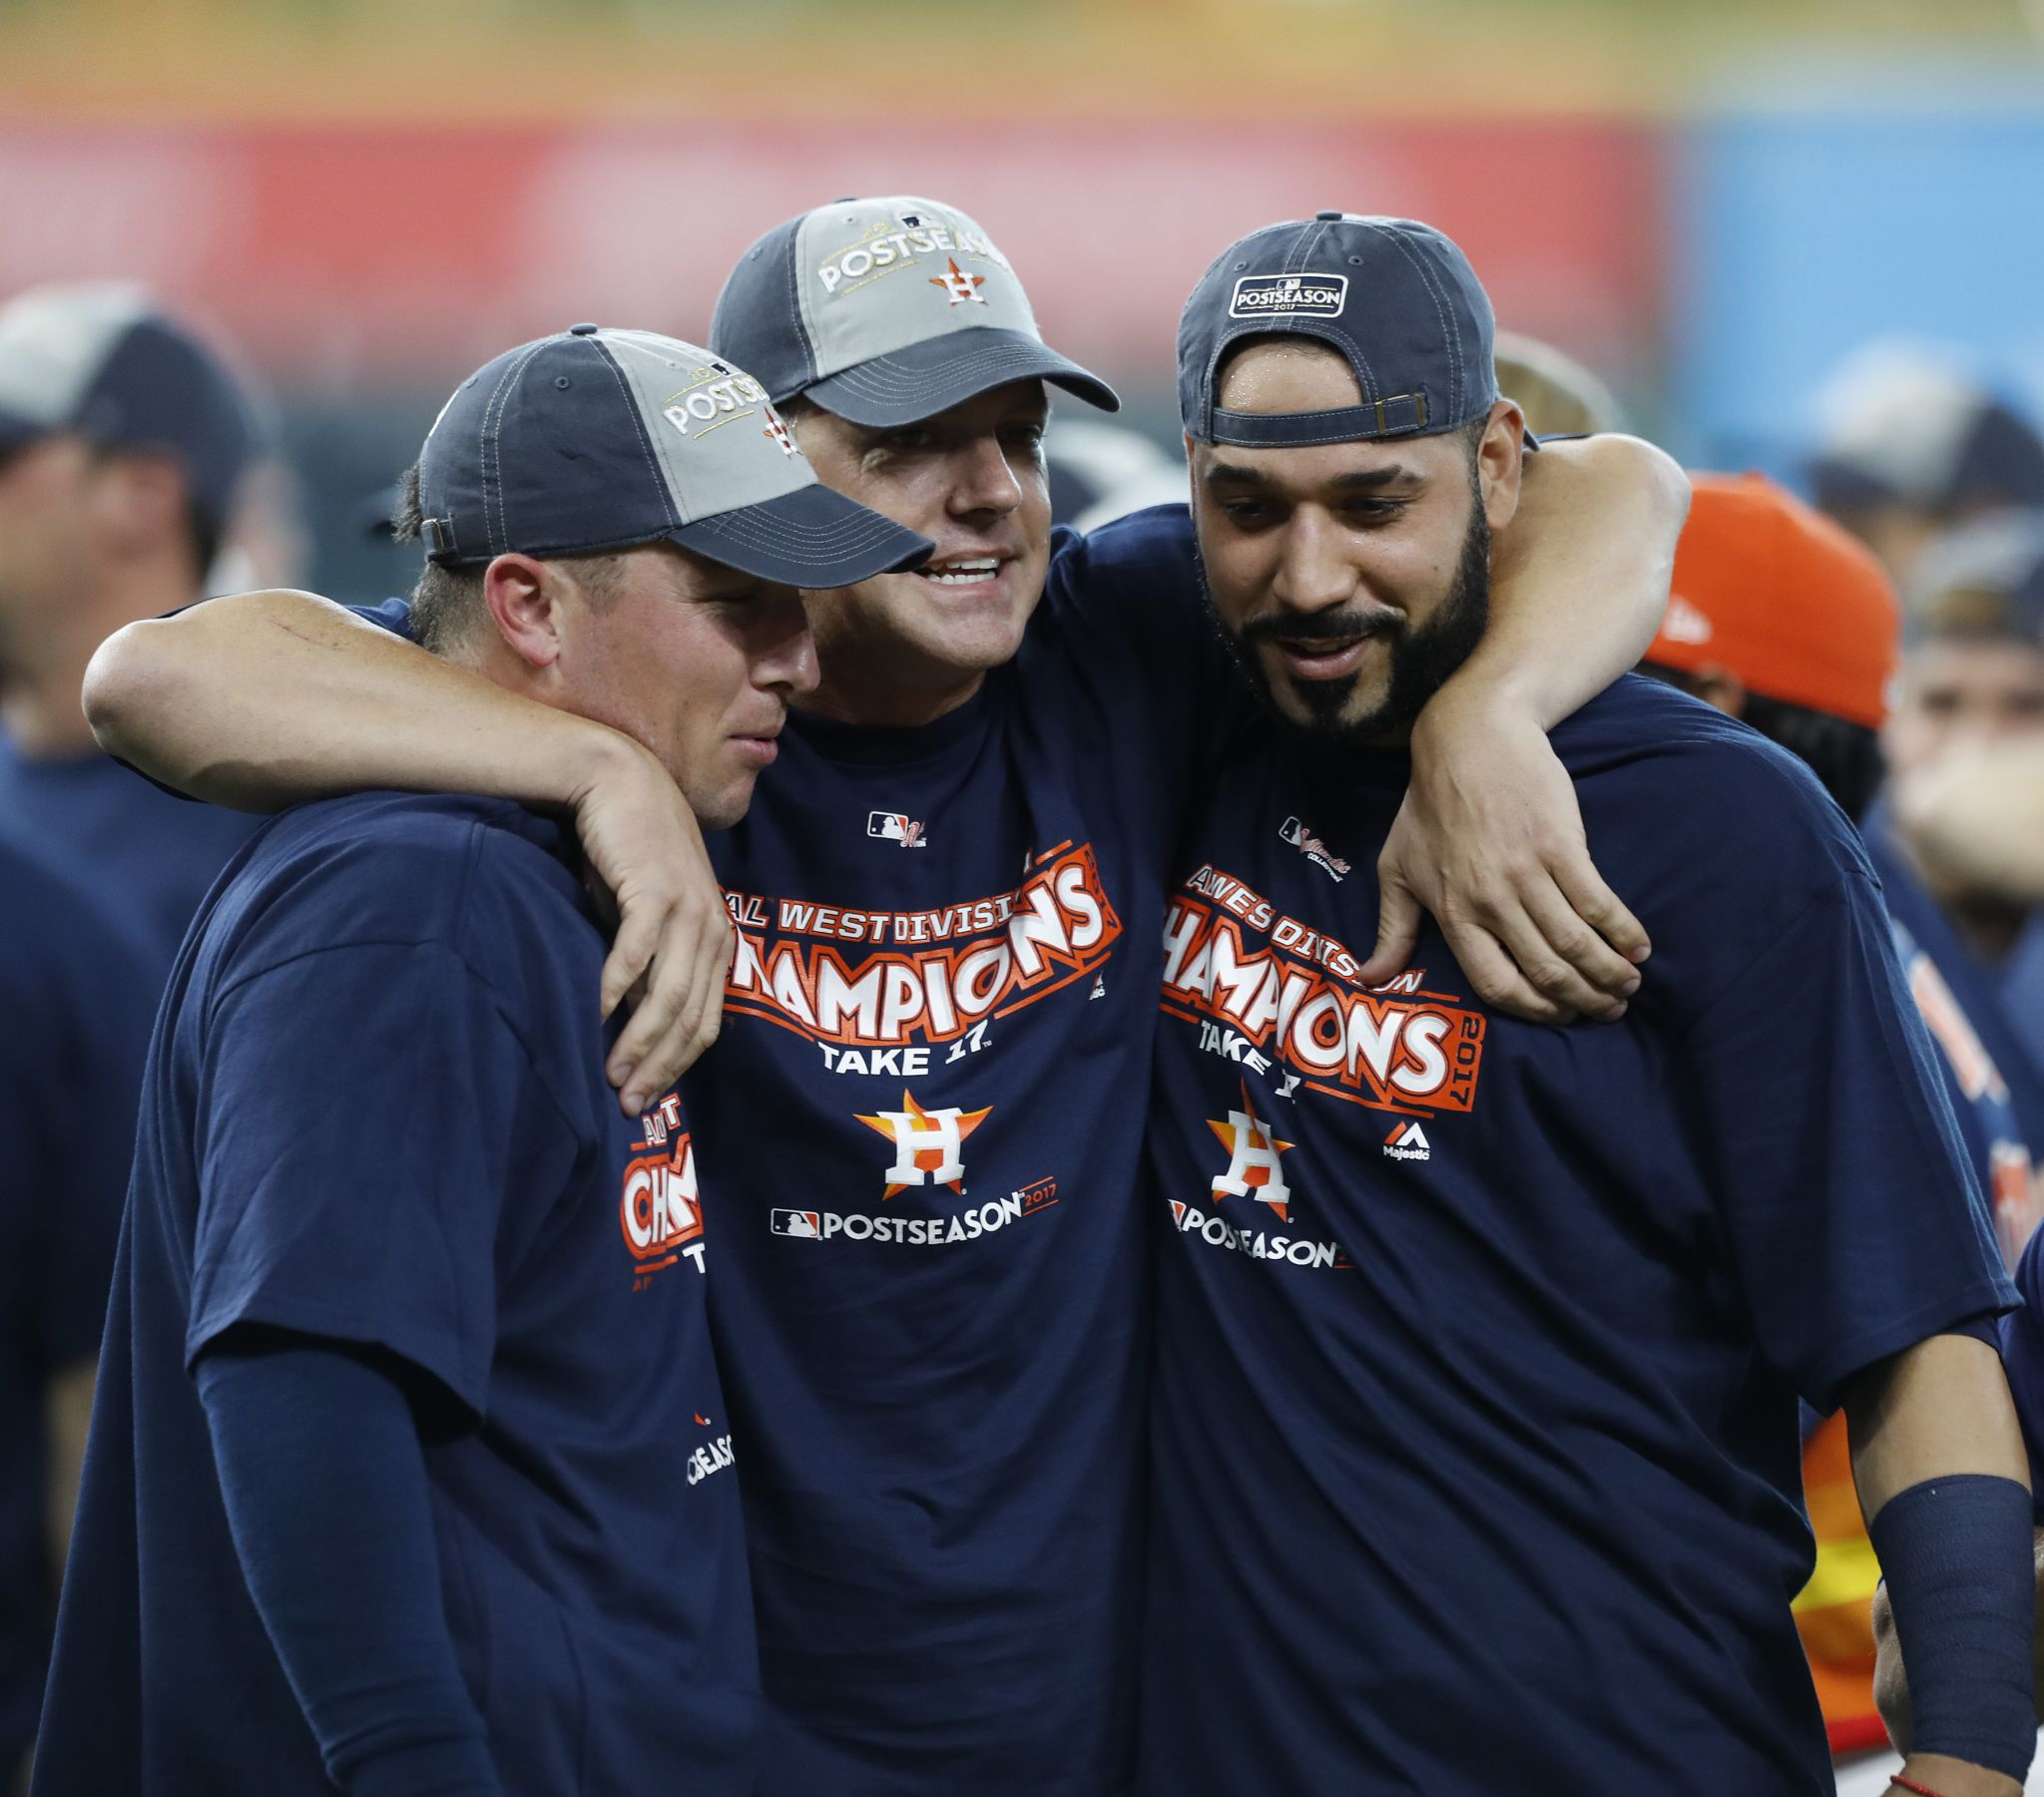 736af377f What Astros  playoff merchandise looks like and how you can get it -  Houston Chronicle